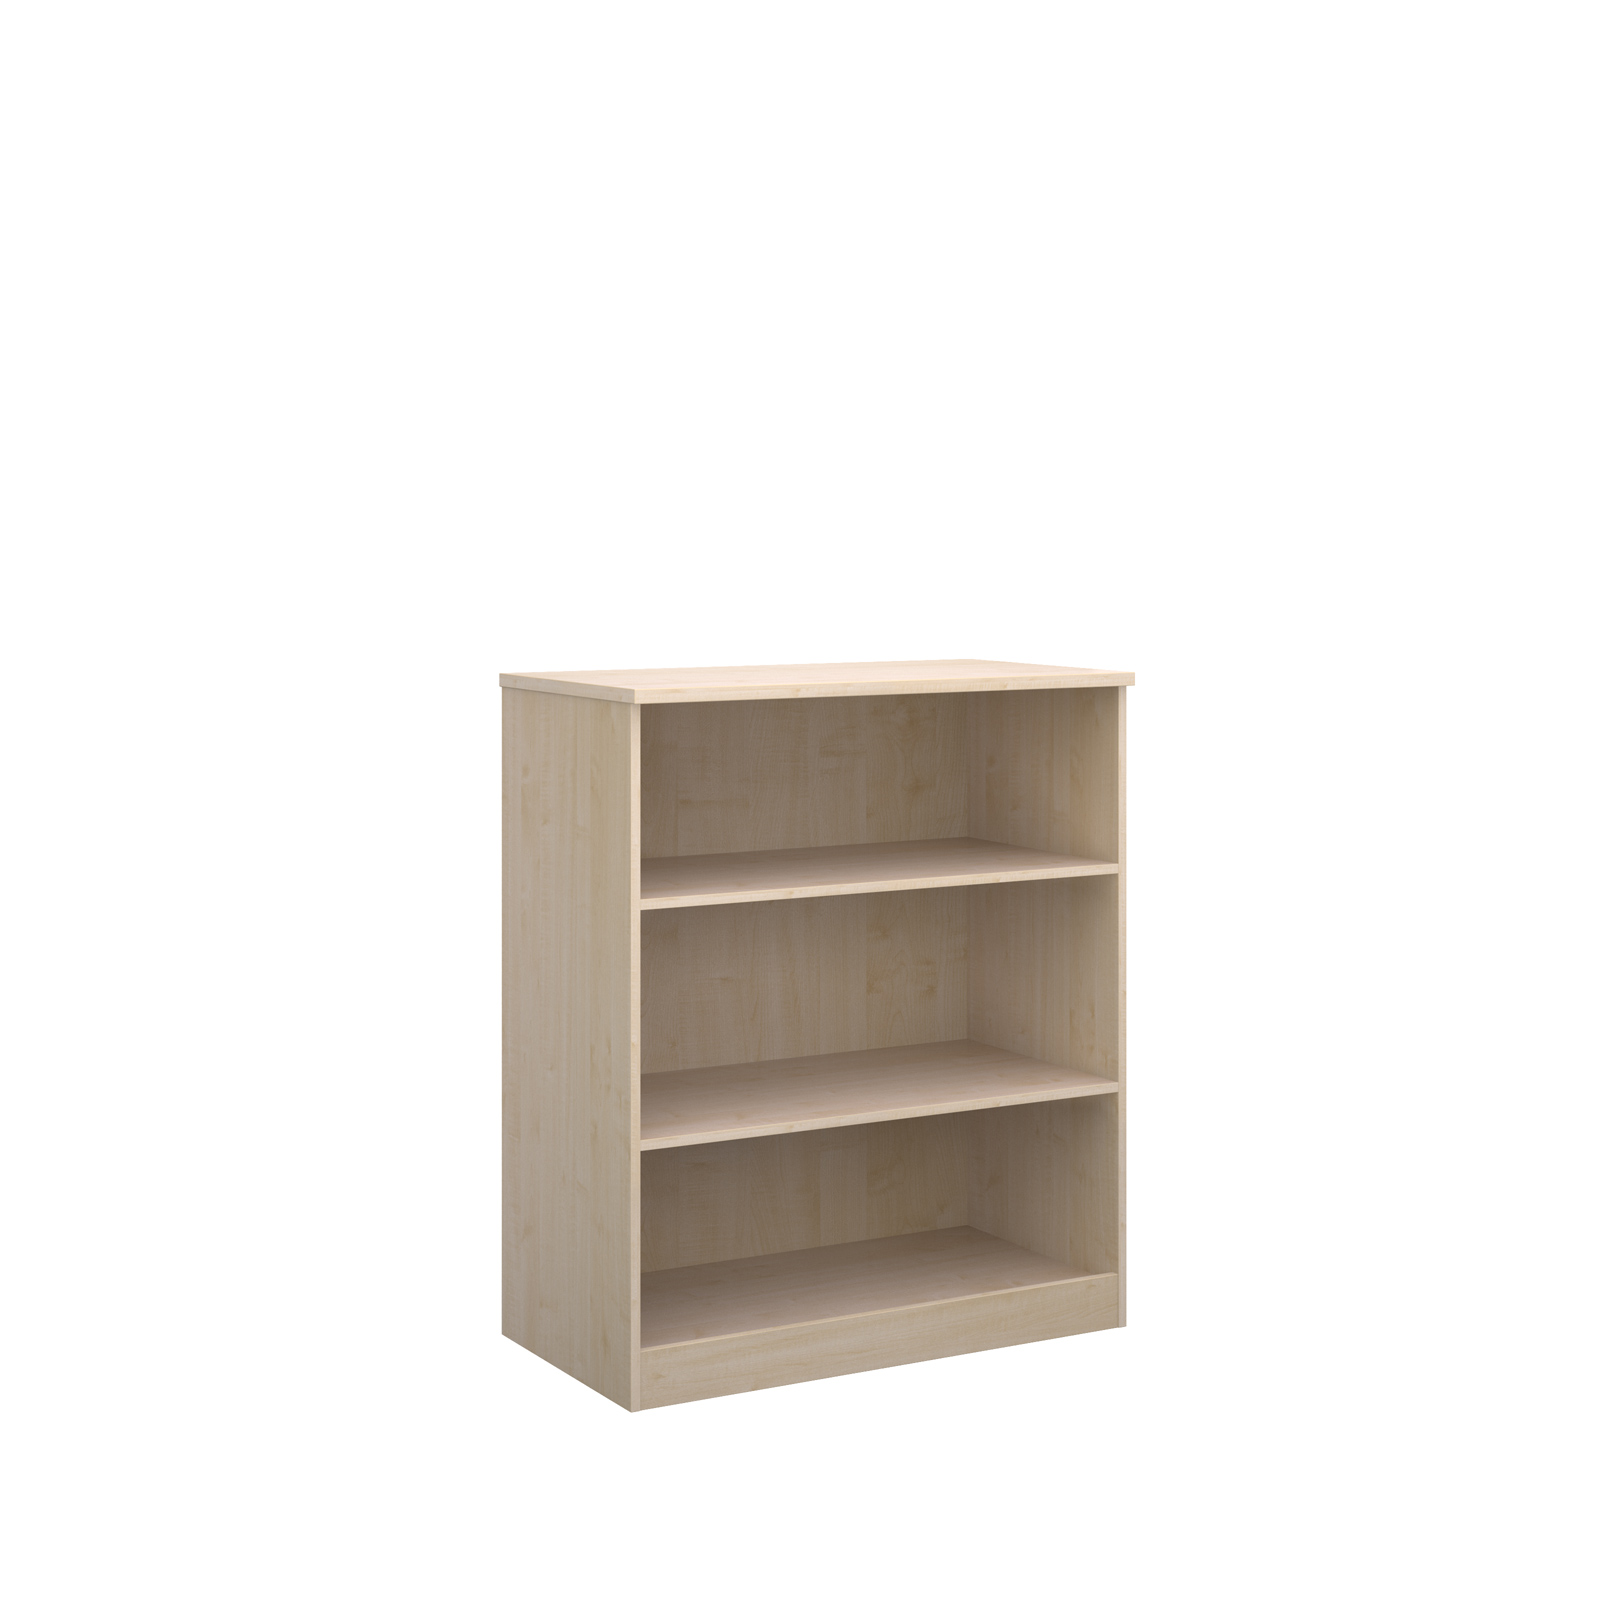 Deluxe bookcase 1200mm high in maple